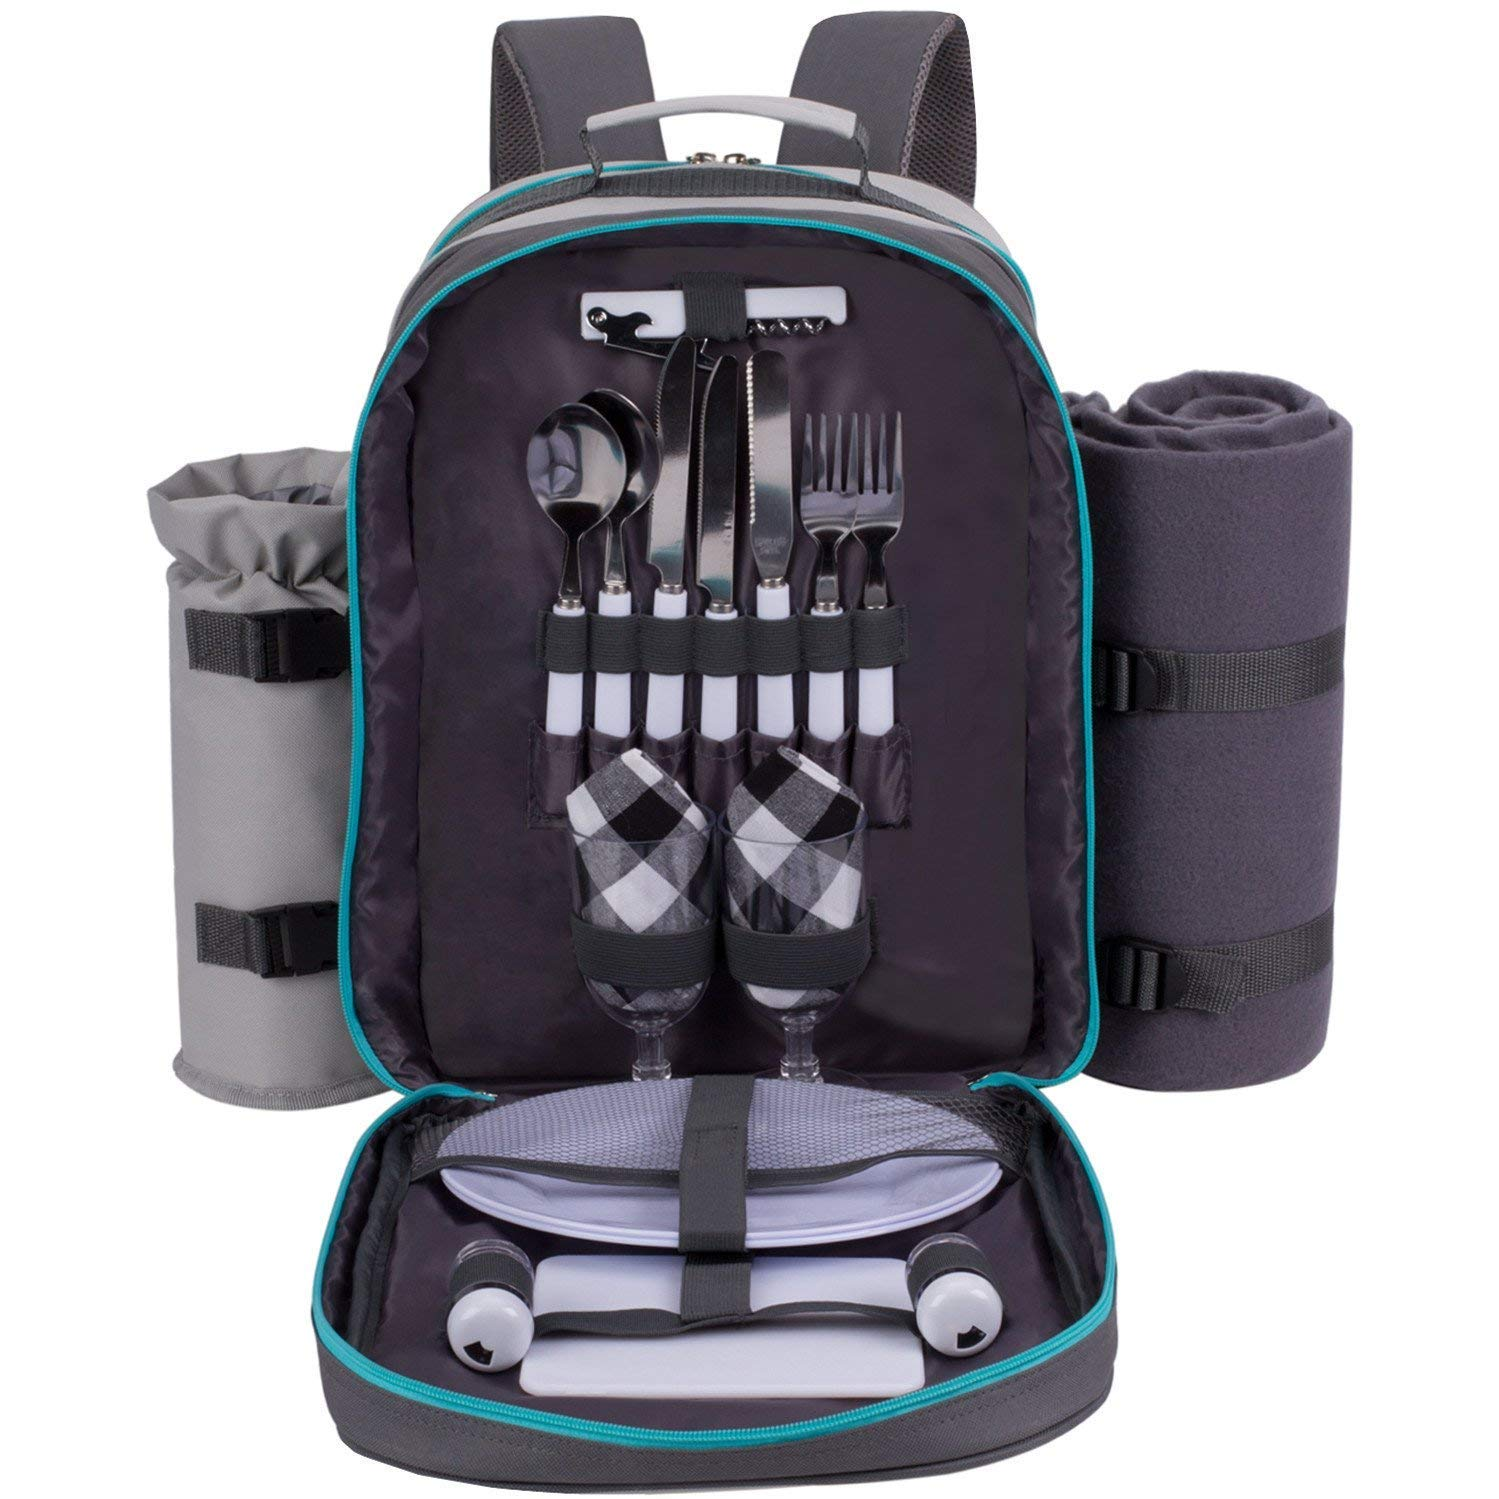 ALLCAMP 2 Person Picnic Backpack Hamper with Cooler Bag includes Tableware & Fleece Blanket